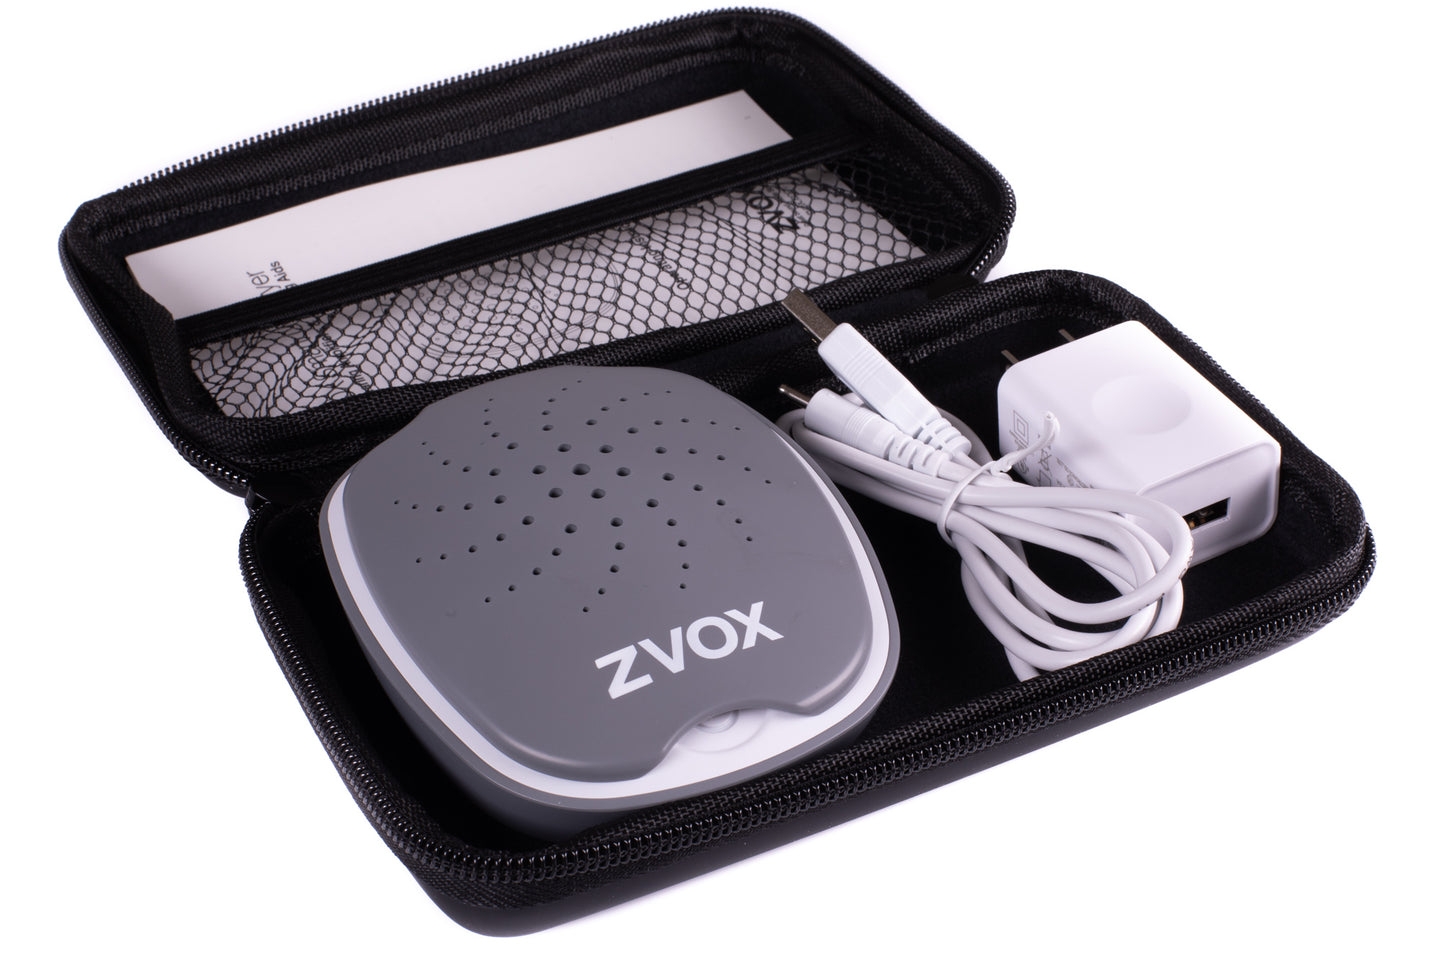 Portable UV Dryer and Cleaning System for Hearing Aids